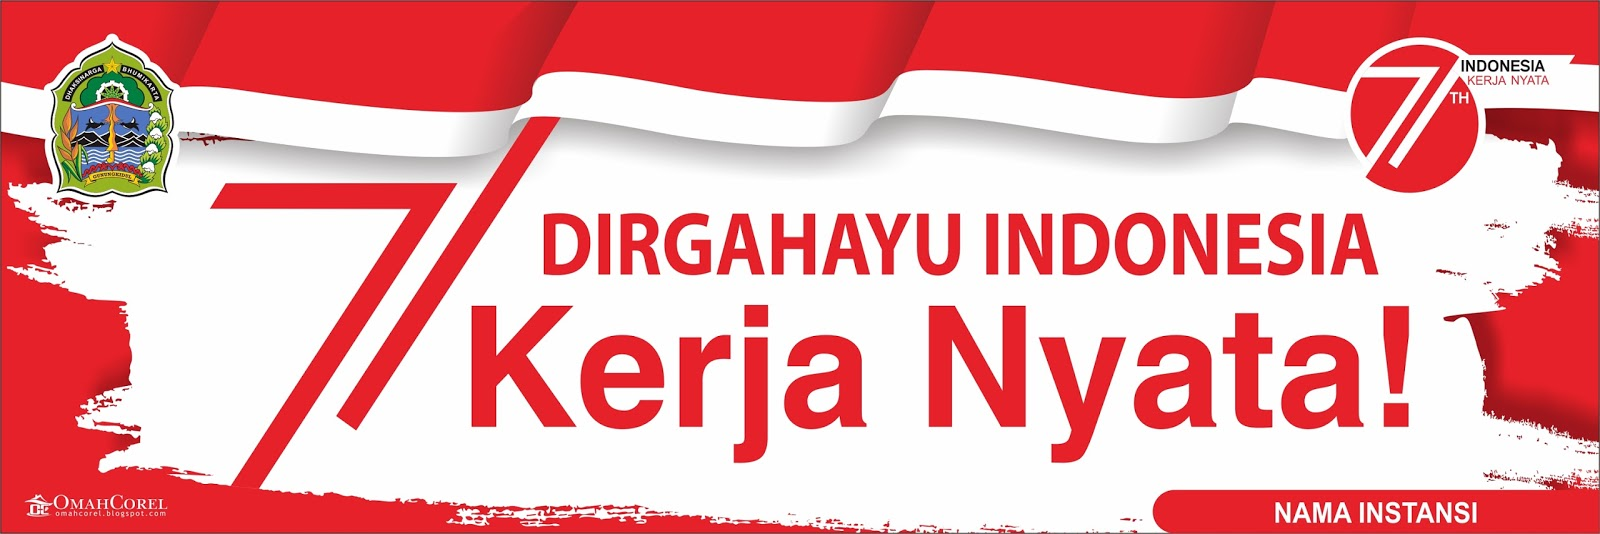 unduh 440 background banner merah putih cdr terbaik download background unduh 440 background banner merah putih